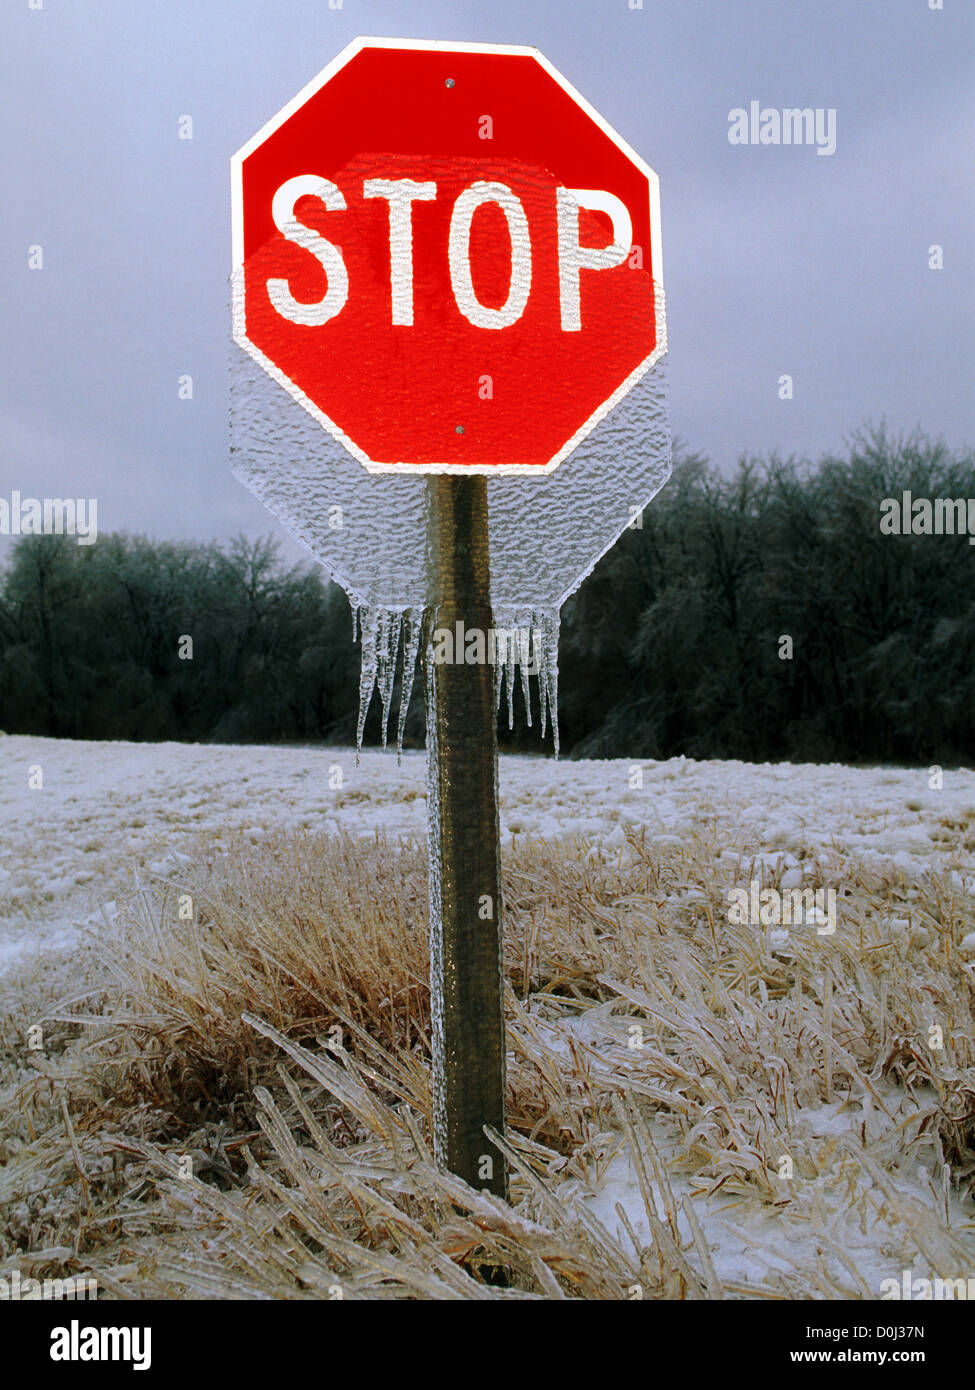 Icicles Dangle From a Stop Sign - Stock Image